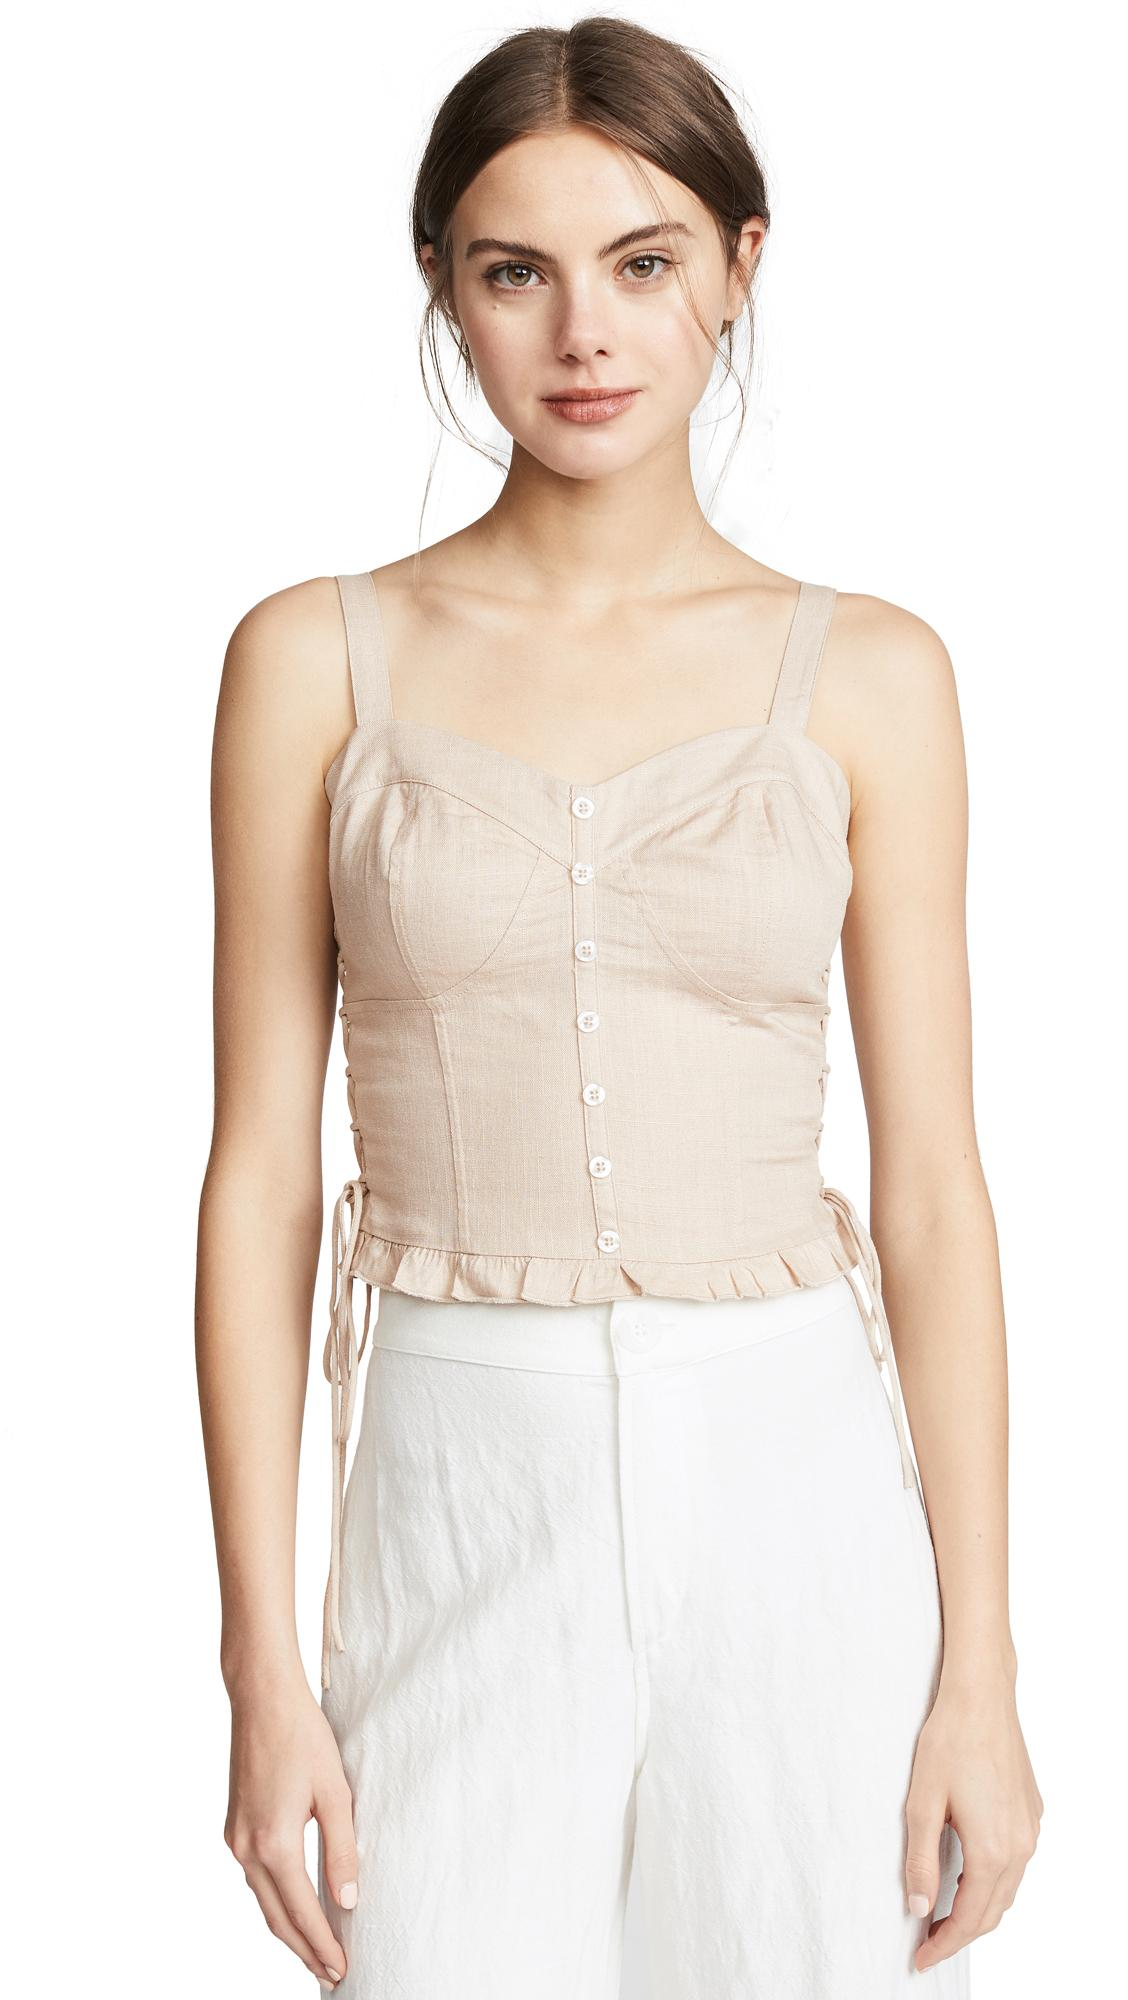 af43aa031e Bustier Top in Sand